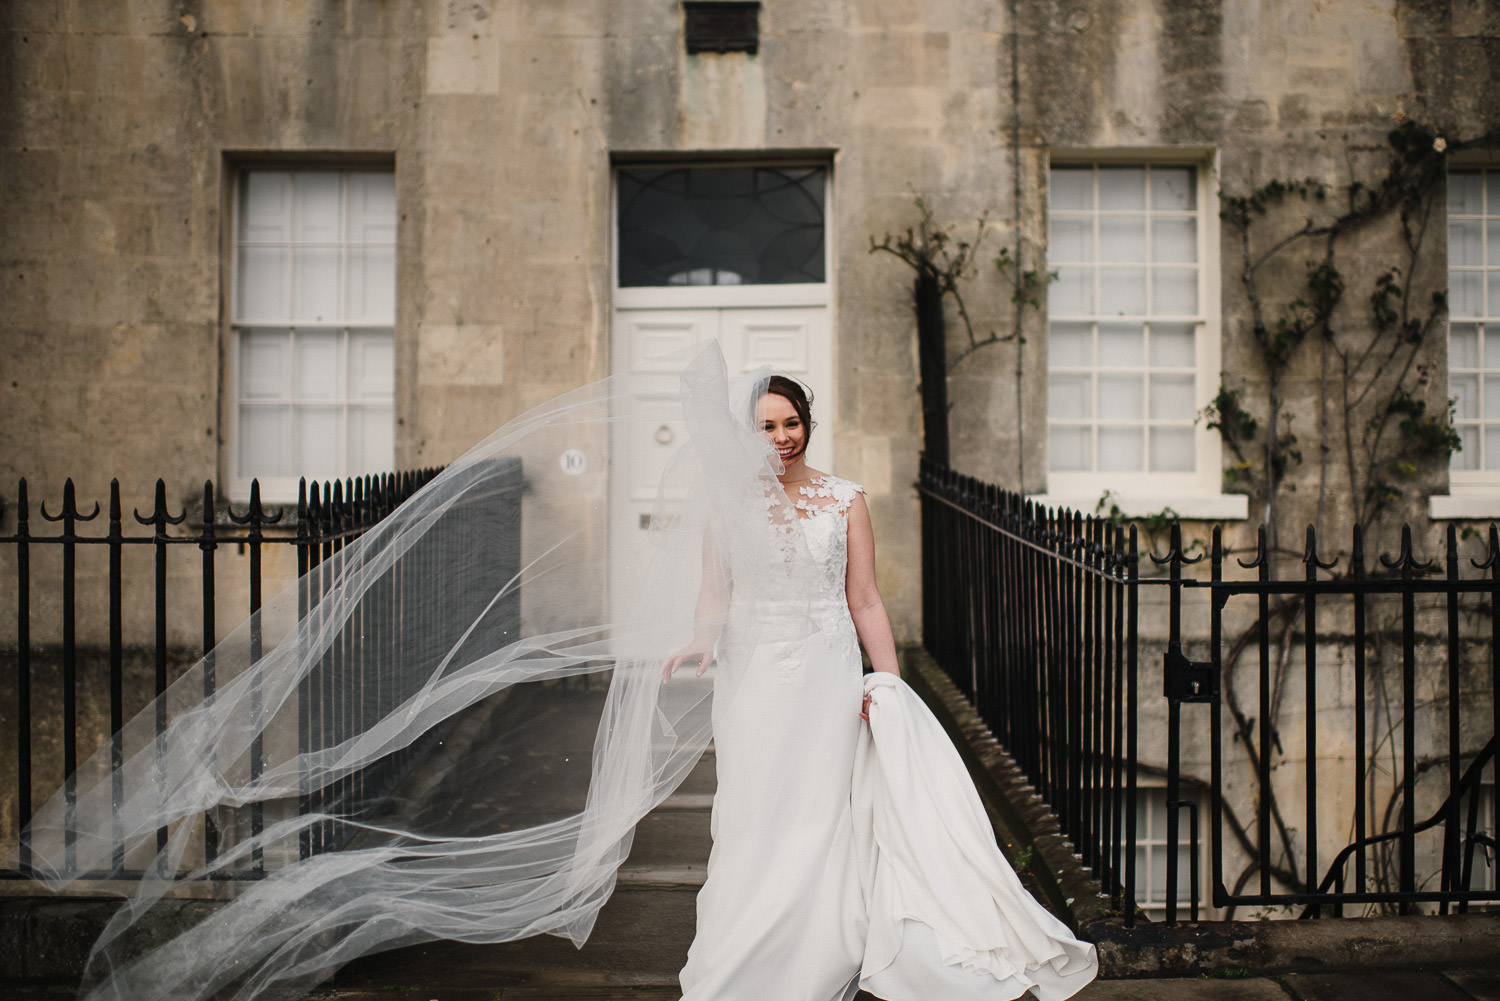 bride veil in the wind outside circus bath by bath wedding photographer the shannons photography